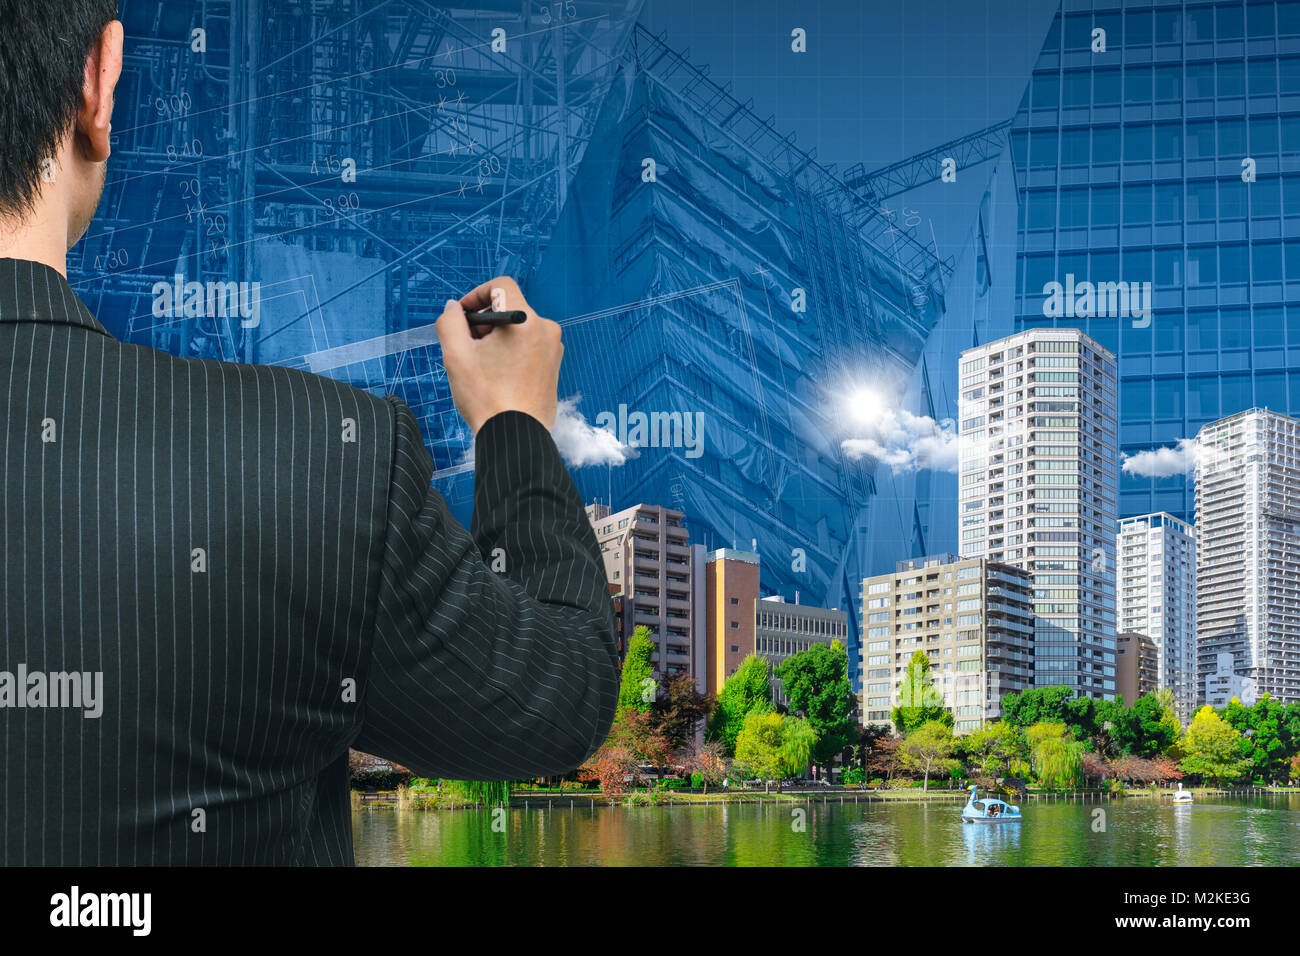 Business man or Architecture Drawing The Green City Good Environment  building of modern metro concept. - Stock Image